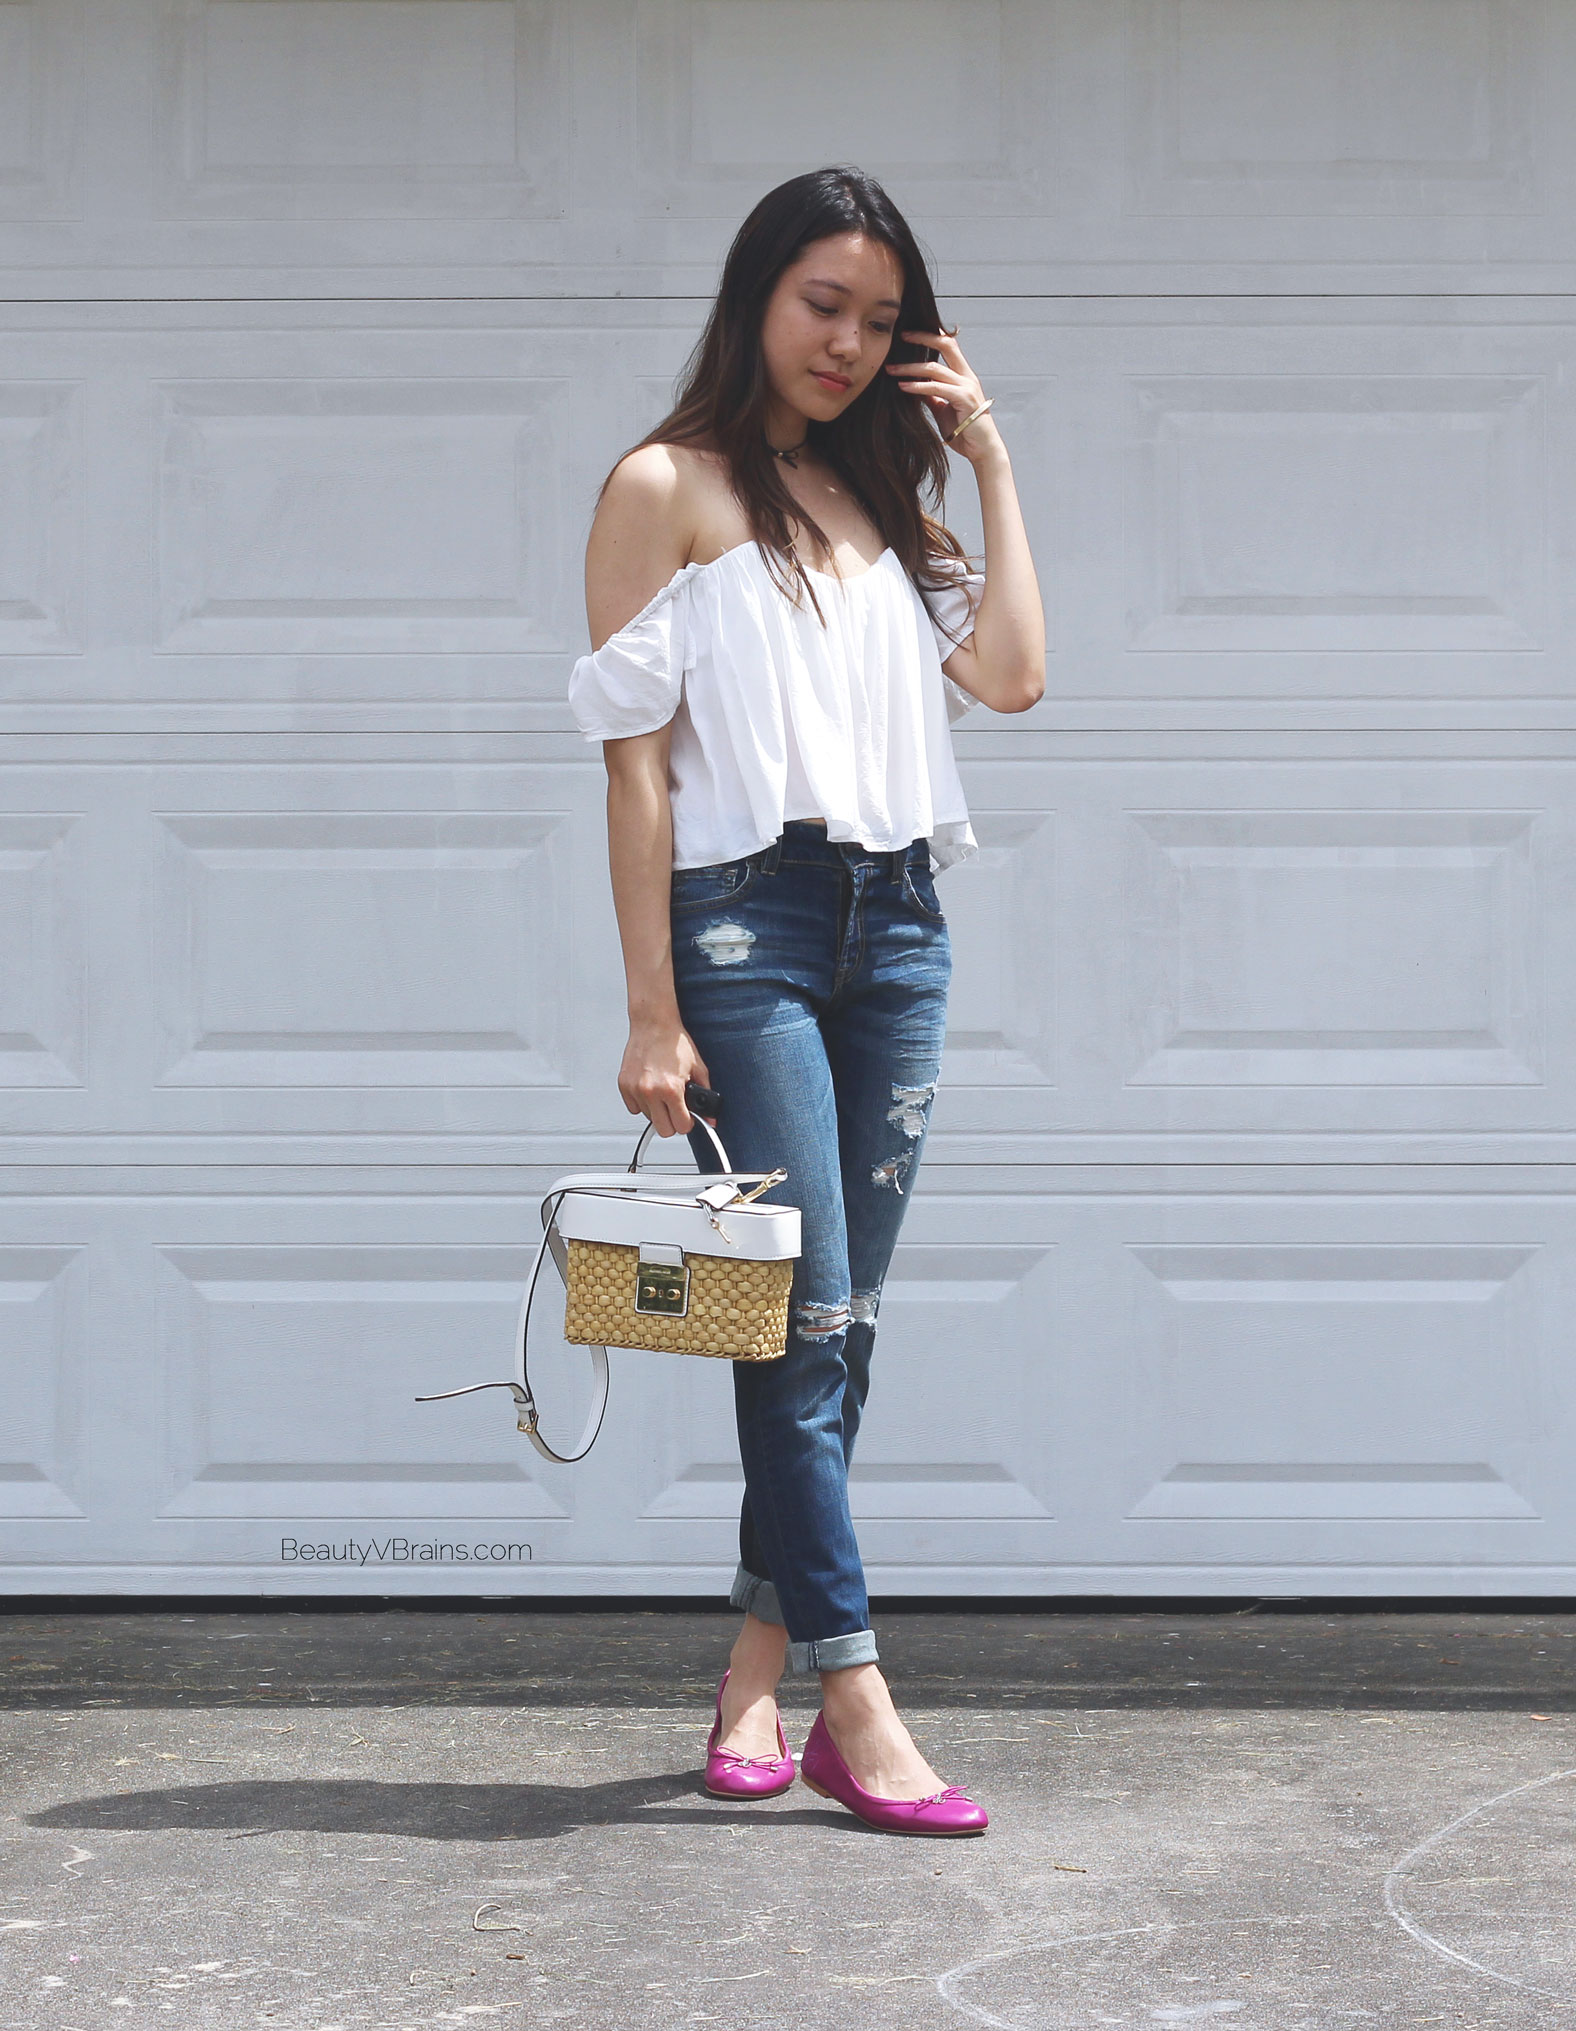 Michael Kors Gabriella bag and off the shoulder white top